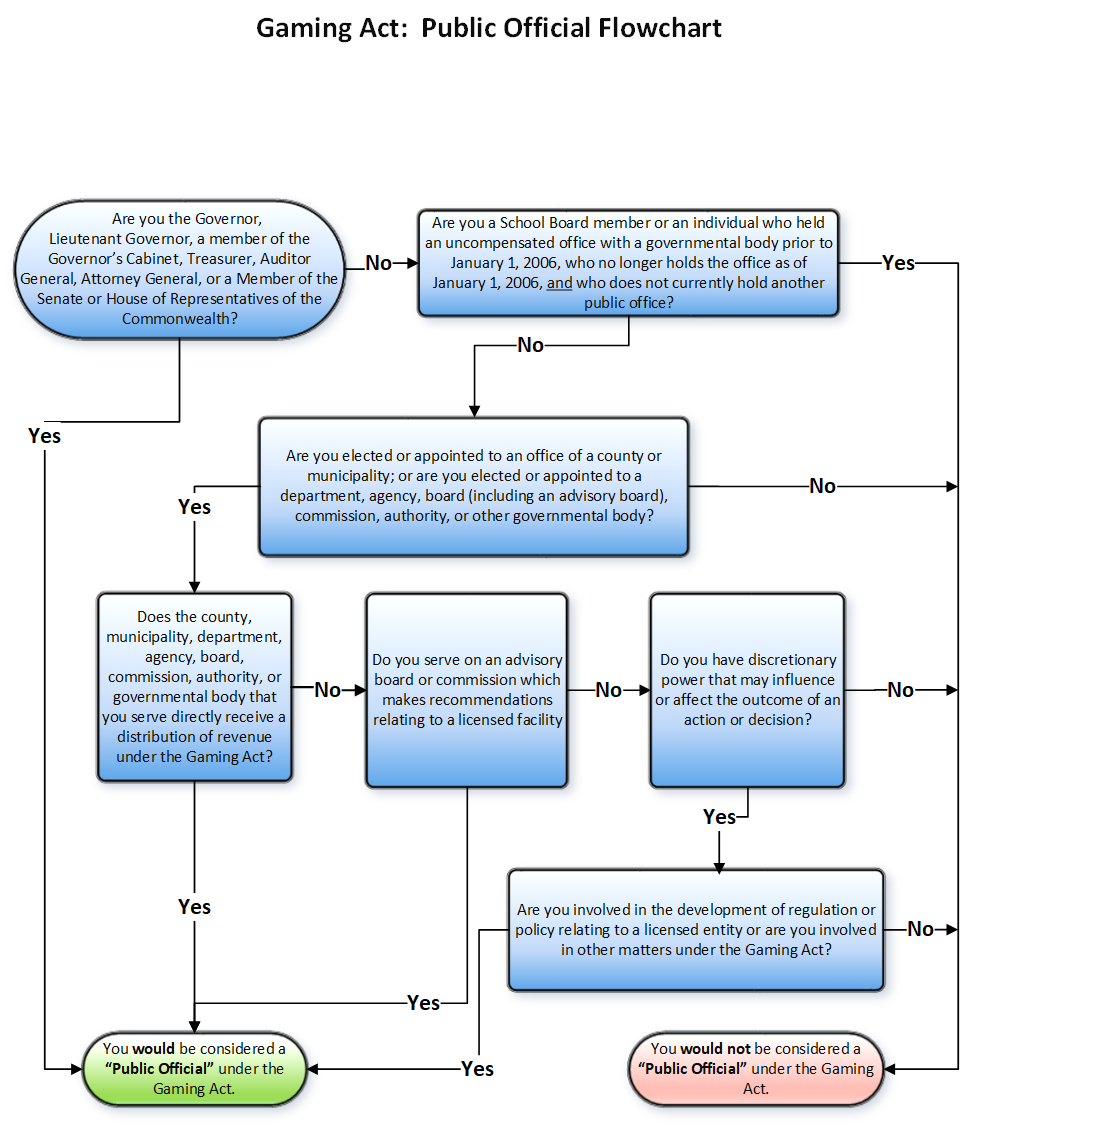 Gaming Act Public Official Flowchart